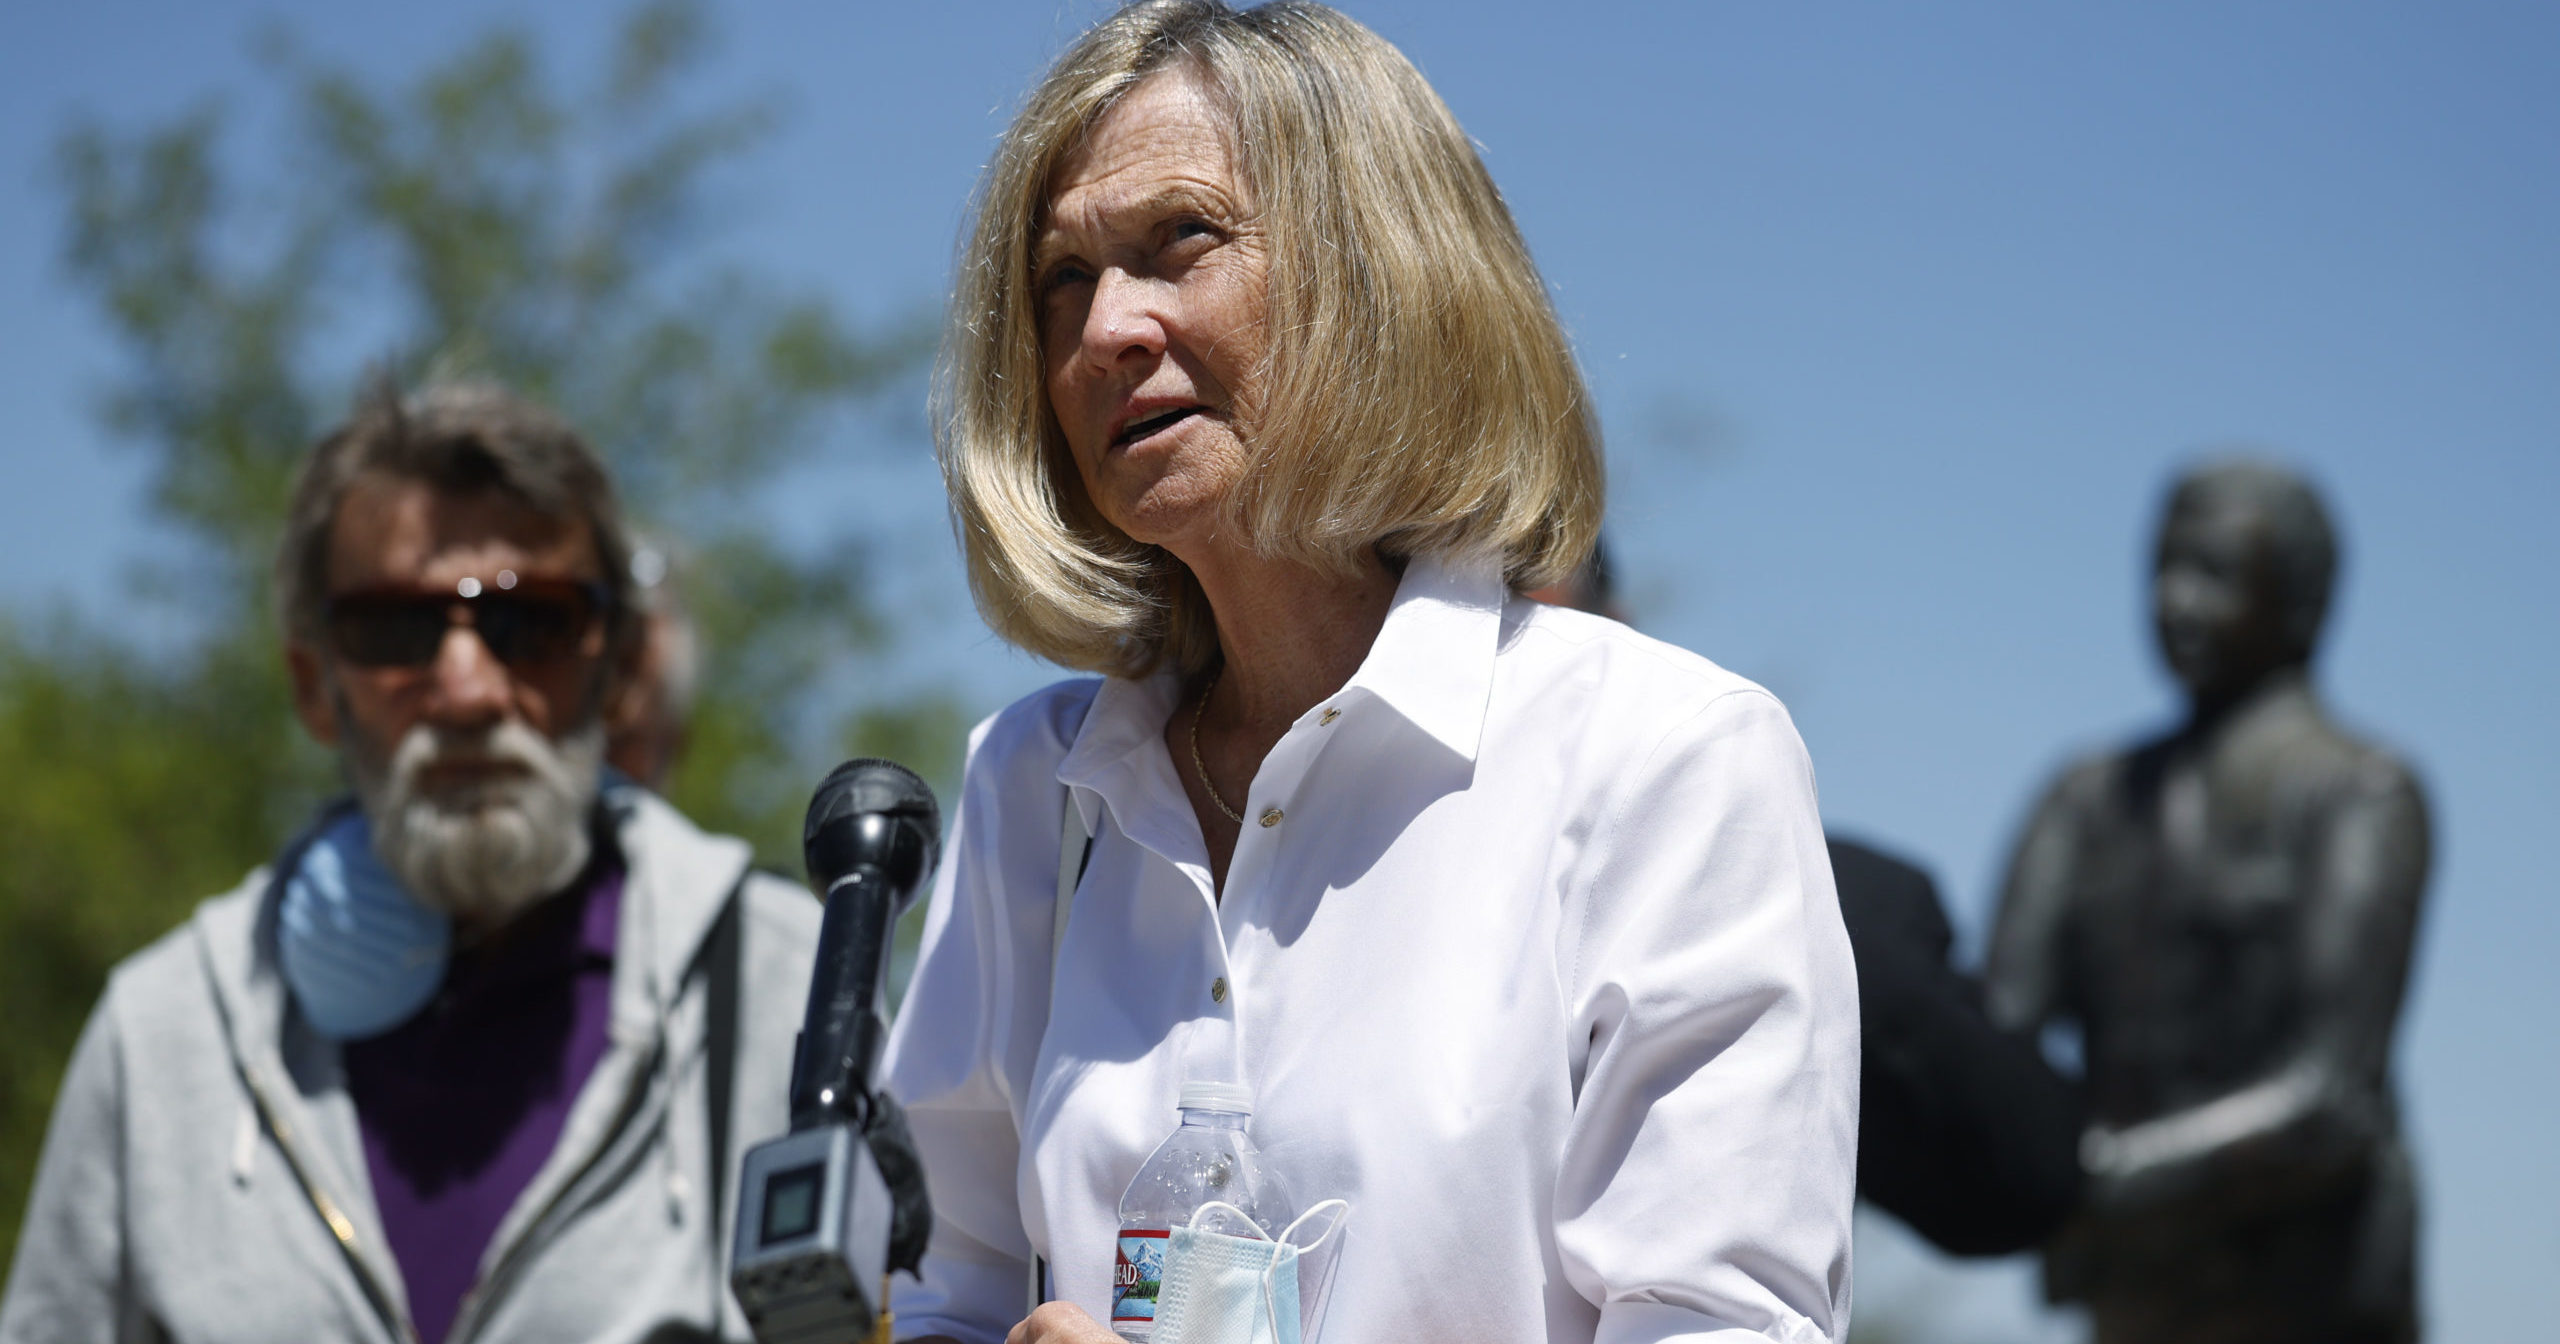 Janet Johnson of Pawcatuck, Connecticut, front, speaks at a press conference after the sentencing hearing on July 1, 2020, for James Curtis Clanton in the death of Helene Pruszynski, Johnson's younger sister, four decades ago in Castle Rock, Colorado. Clanton has been sentenced to life in prison.